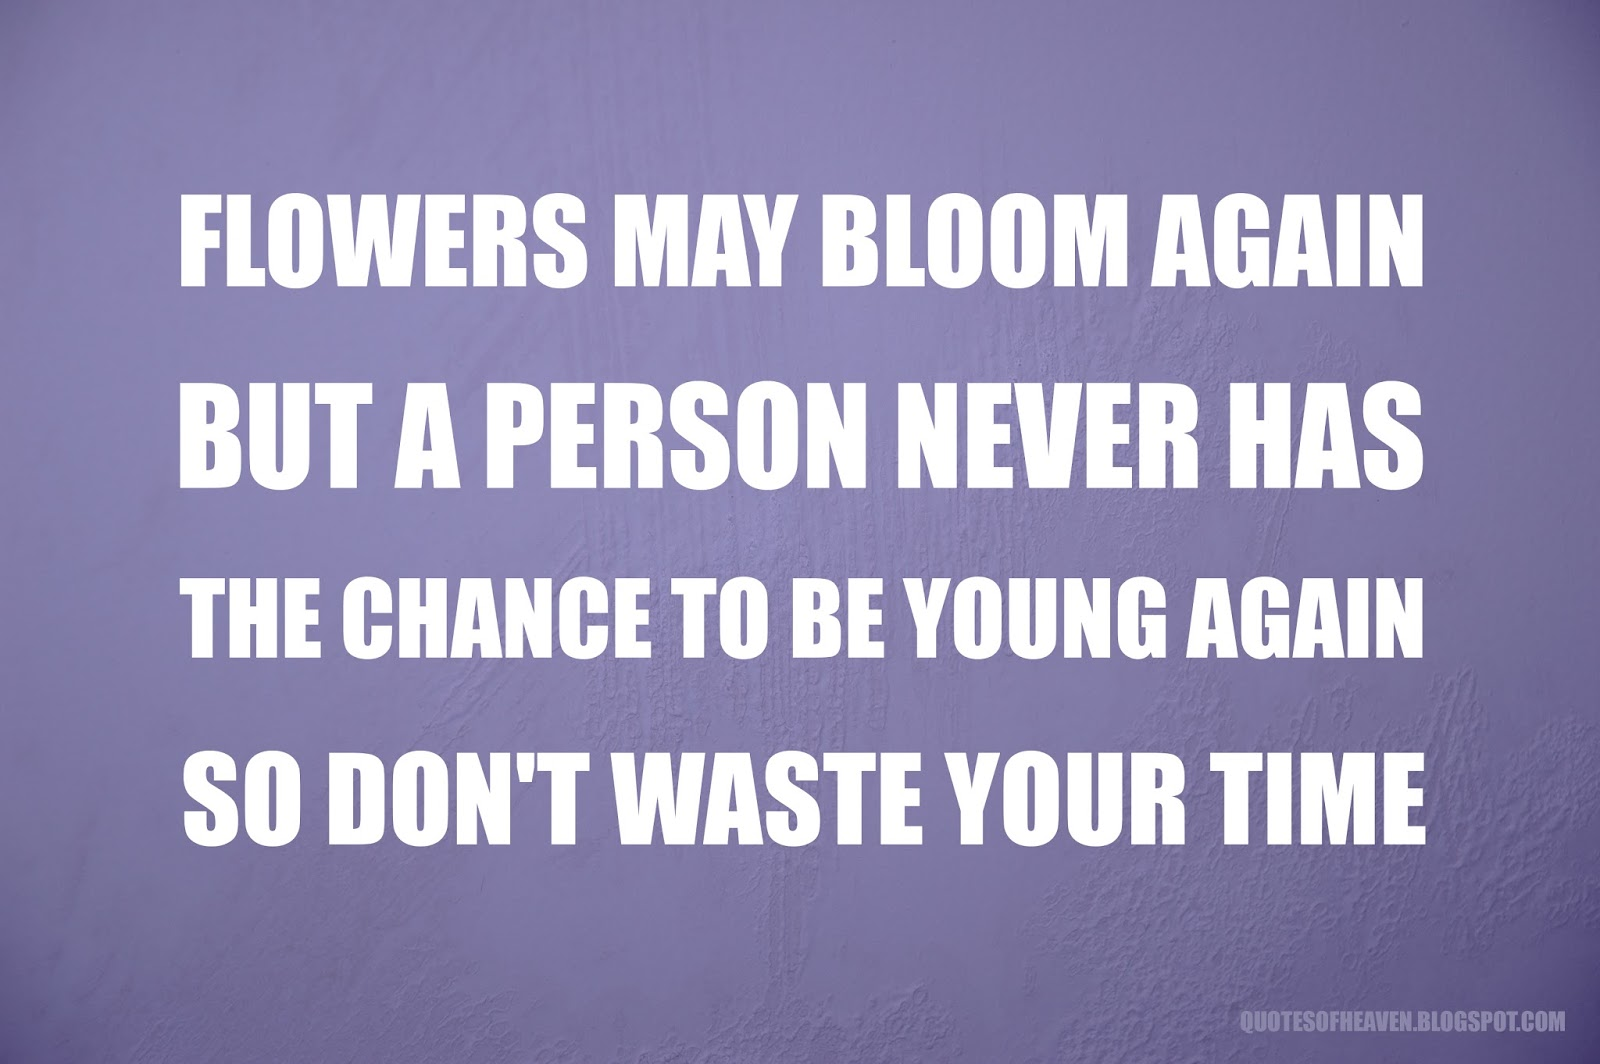 Quotes From Heaven Flowers May Bloom Again But A Person Never Has